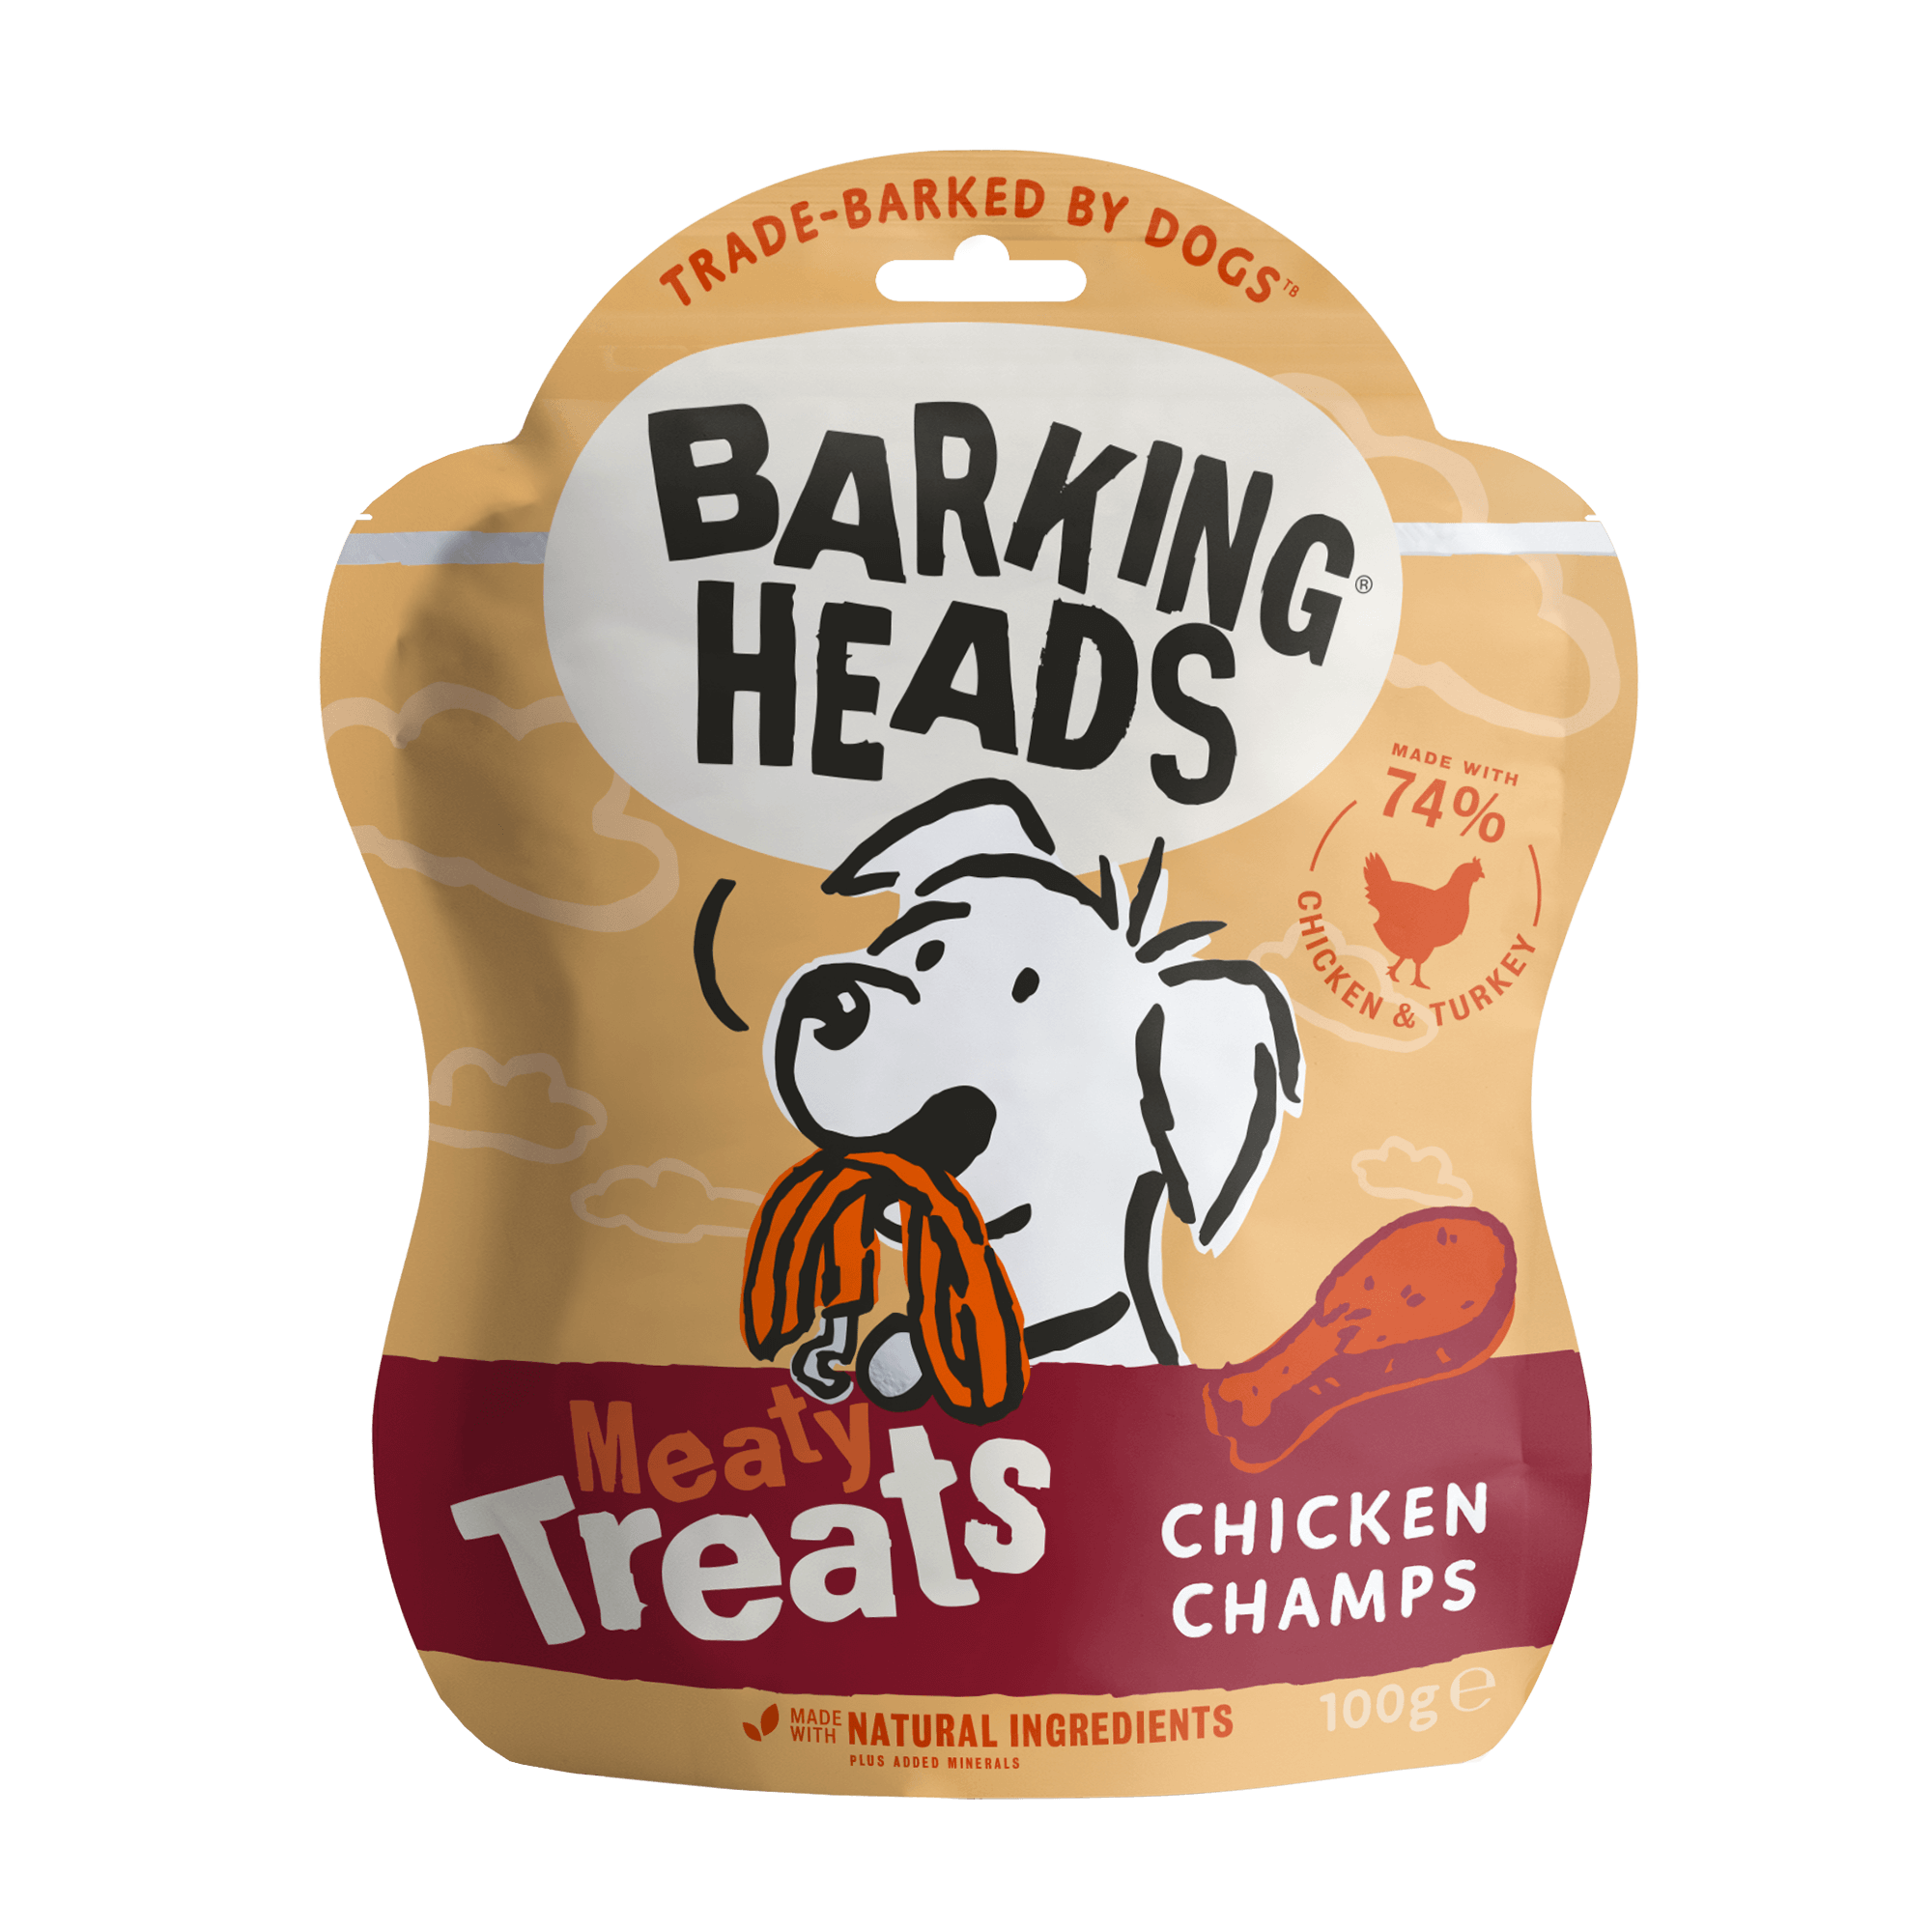 barking heads treats chicken champs front of pack